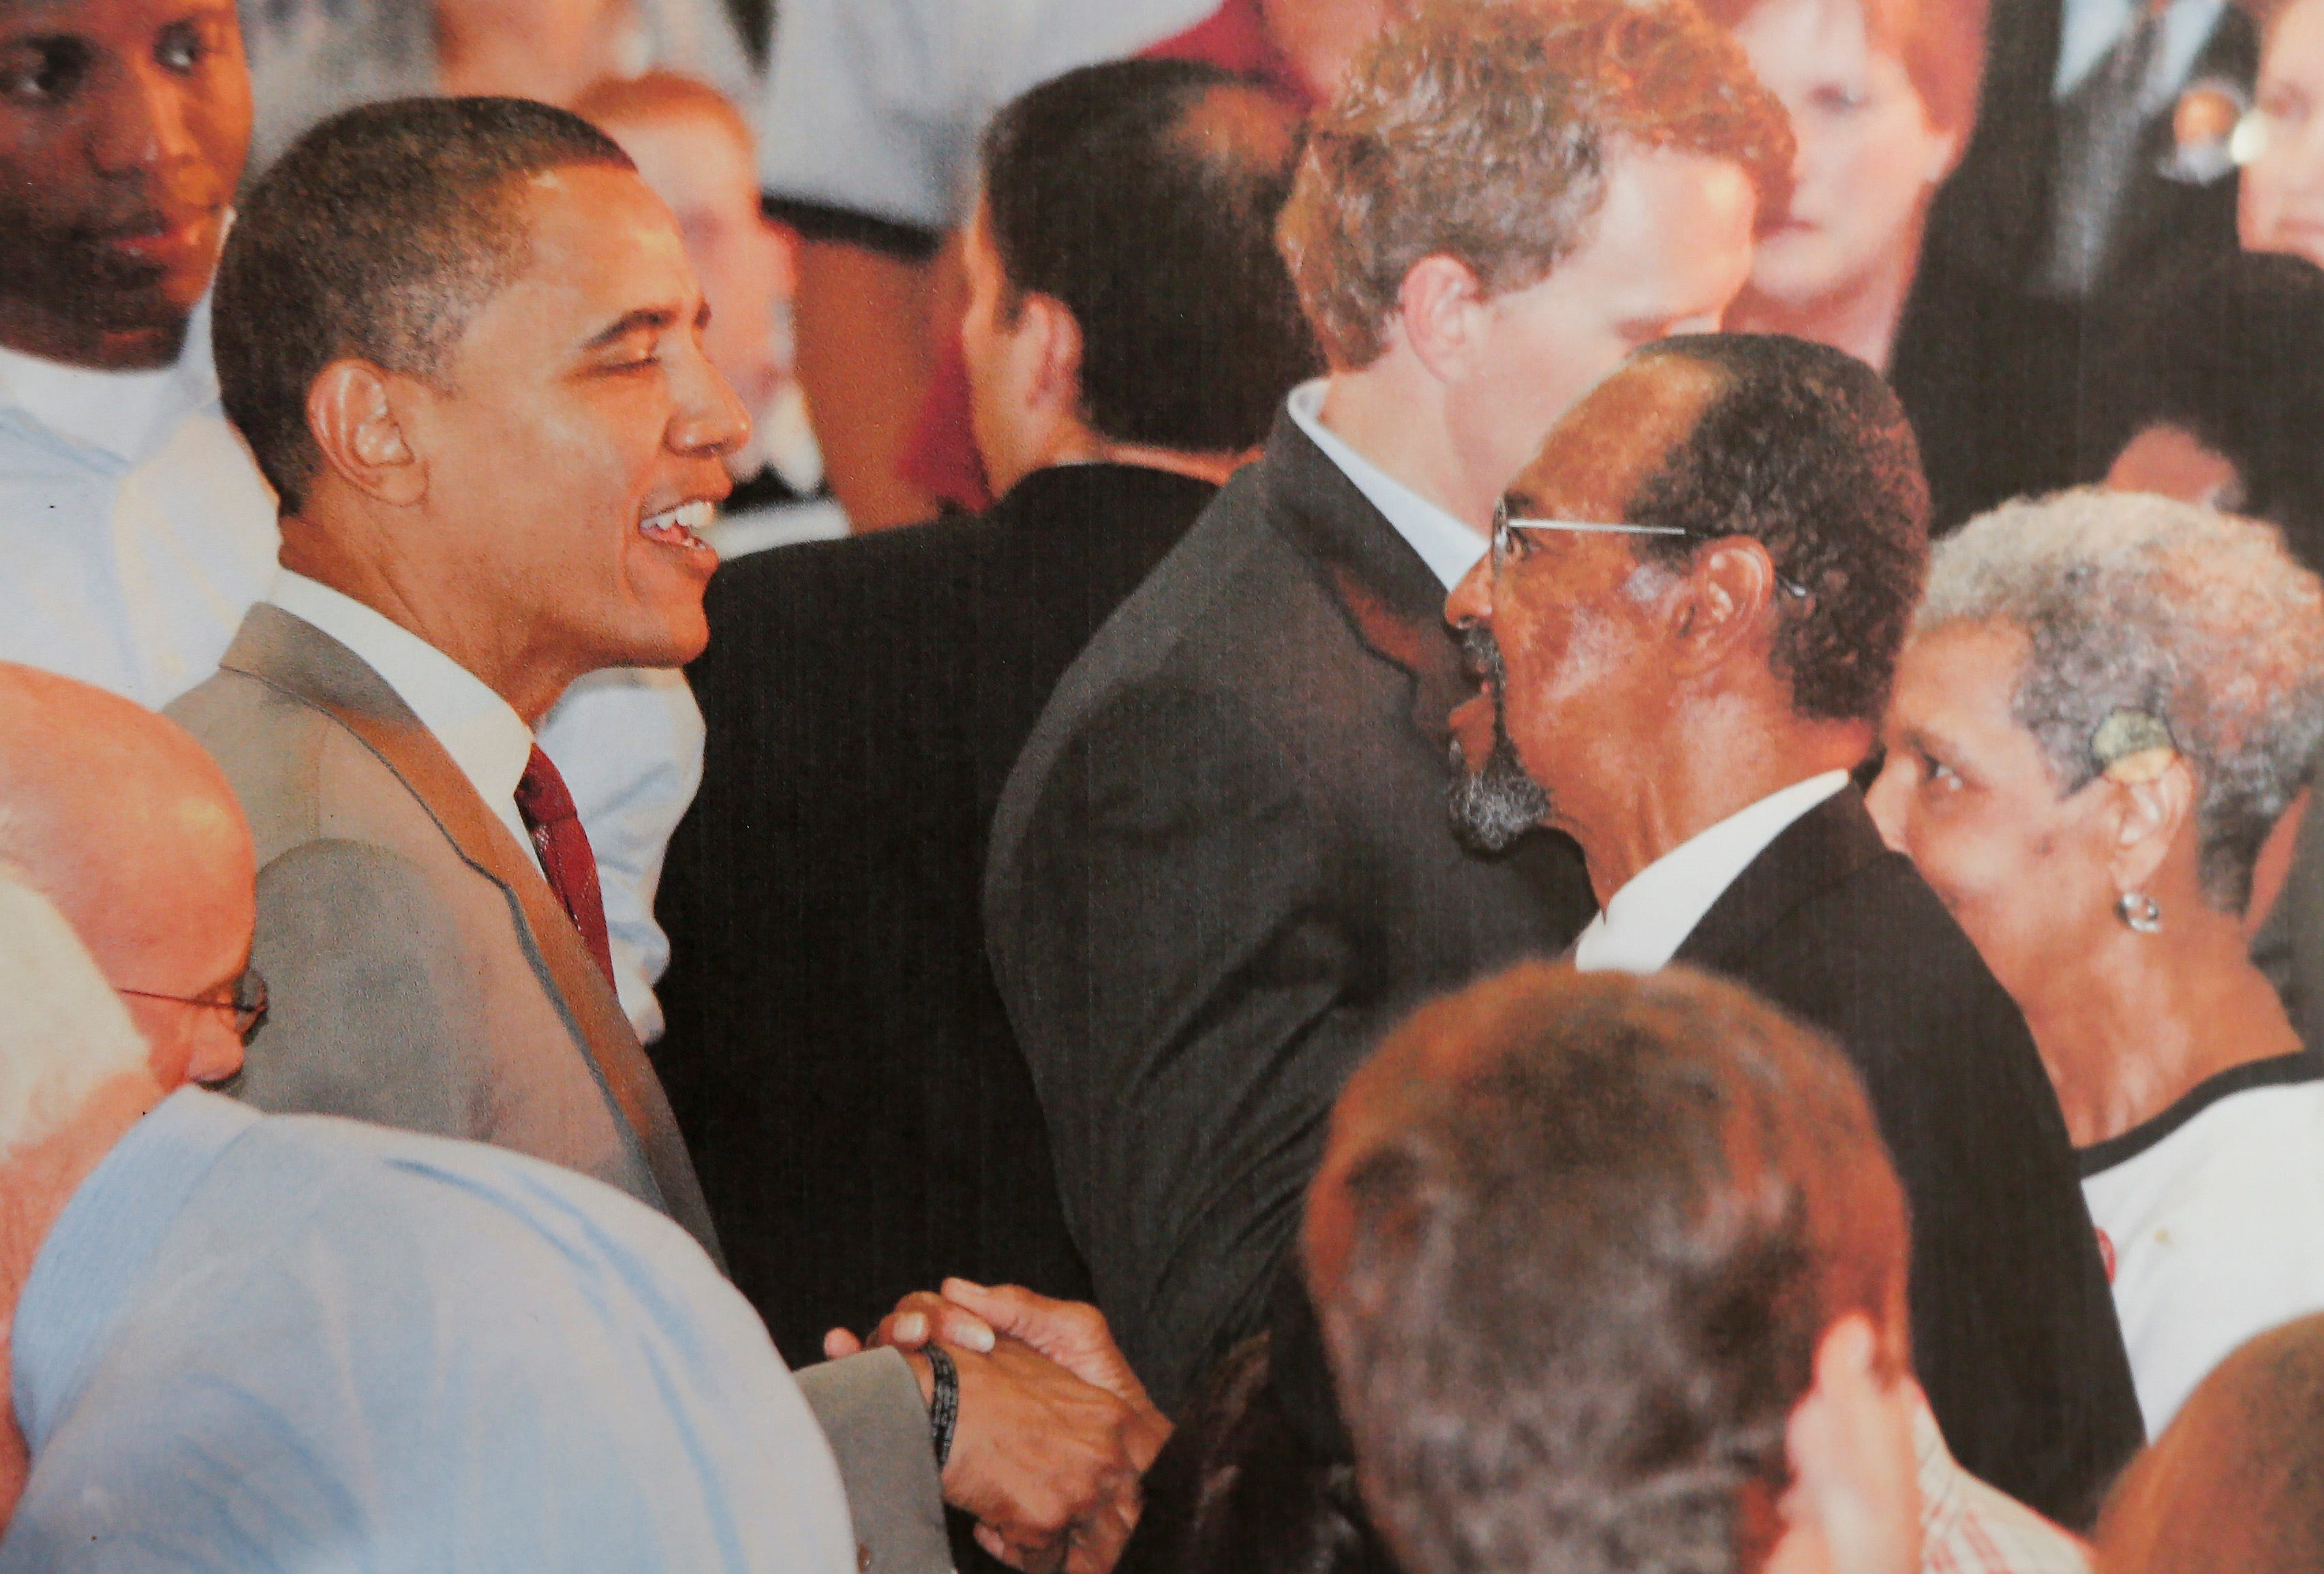 Denny Whayne, right, shakes hands with President Barack Obama.